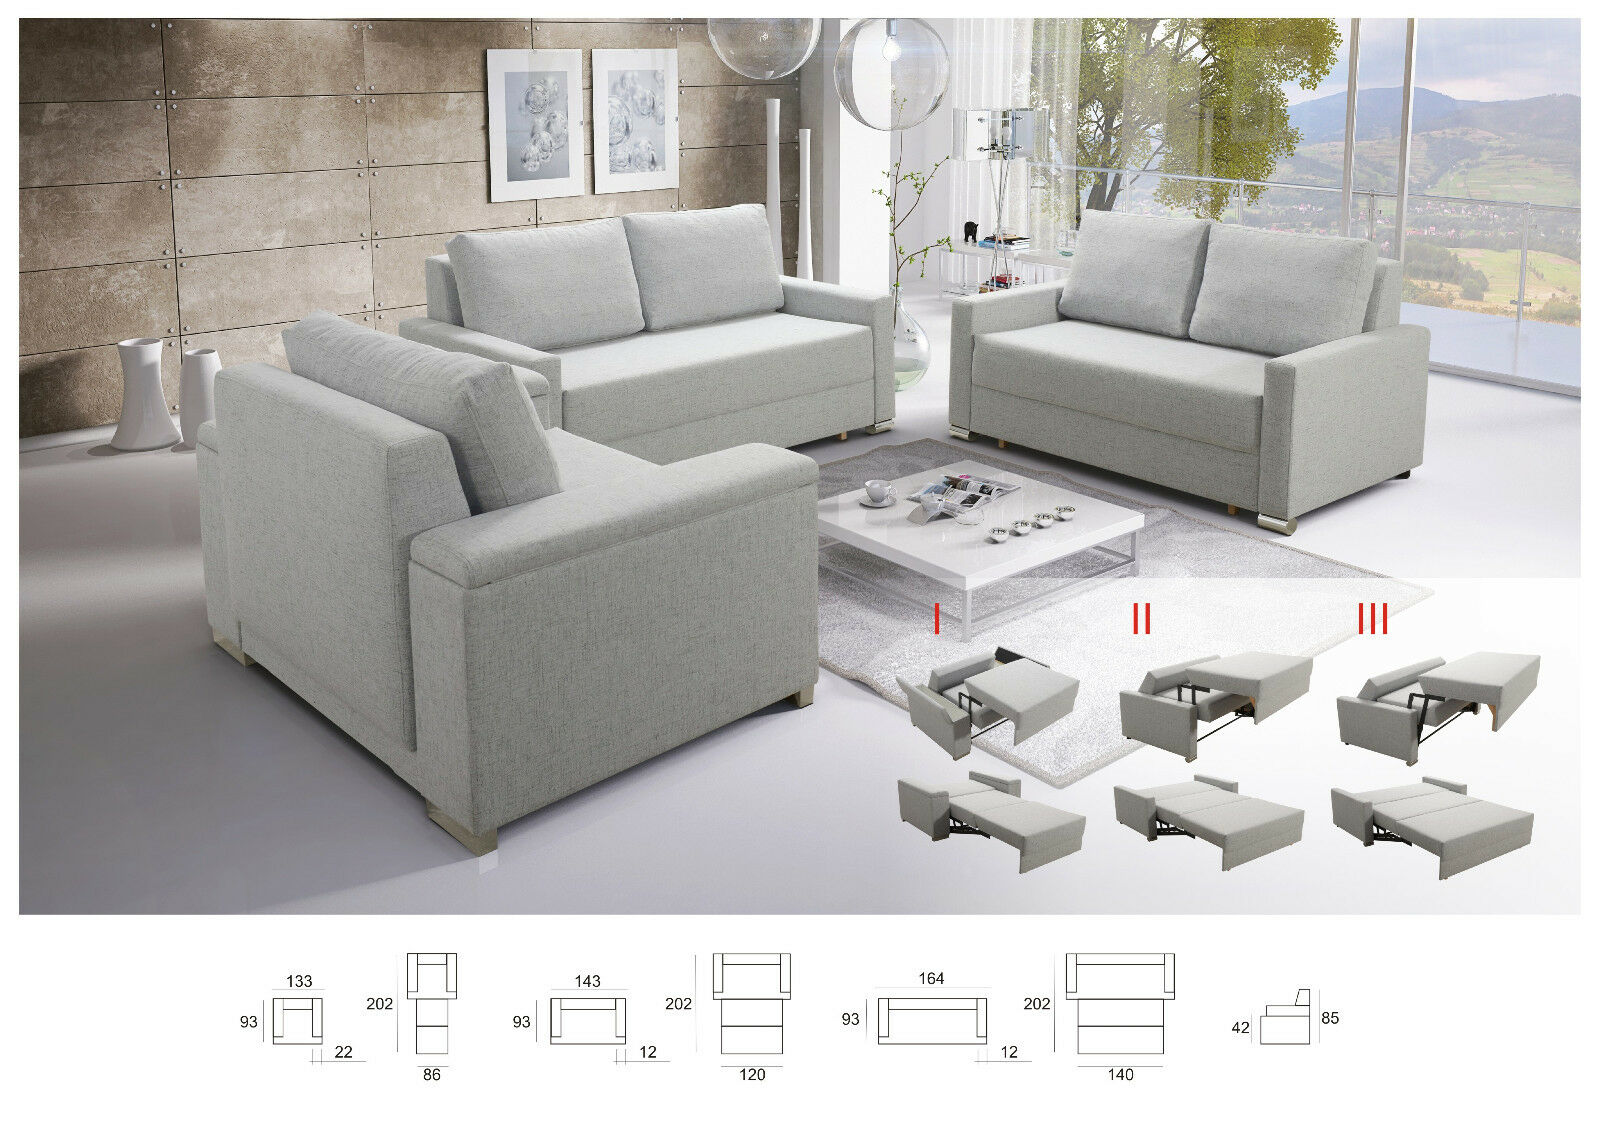 Sofagarnitur 3 2 1 Sofa Set 3 2 1 Buffalo Mit Schlaffunktion Couchgarnitur Couch Sofagarnitur Wohnl